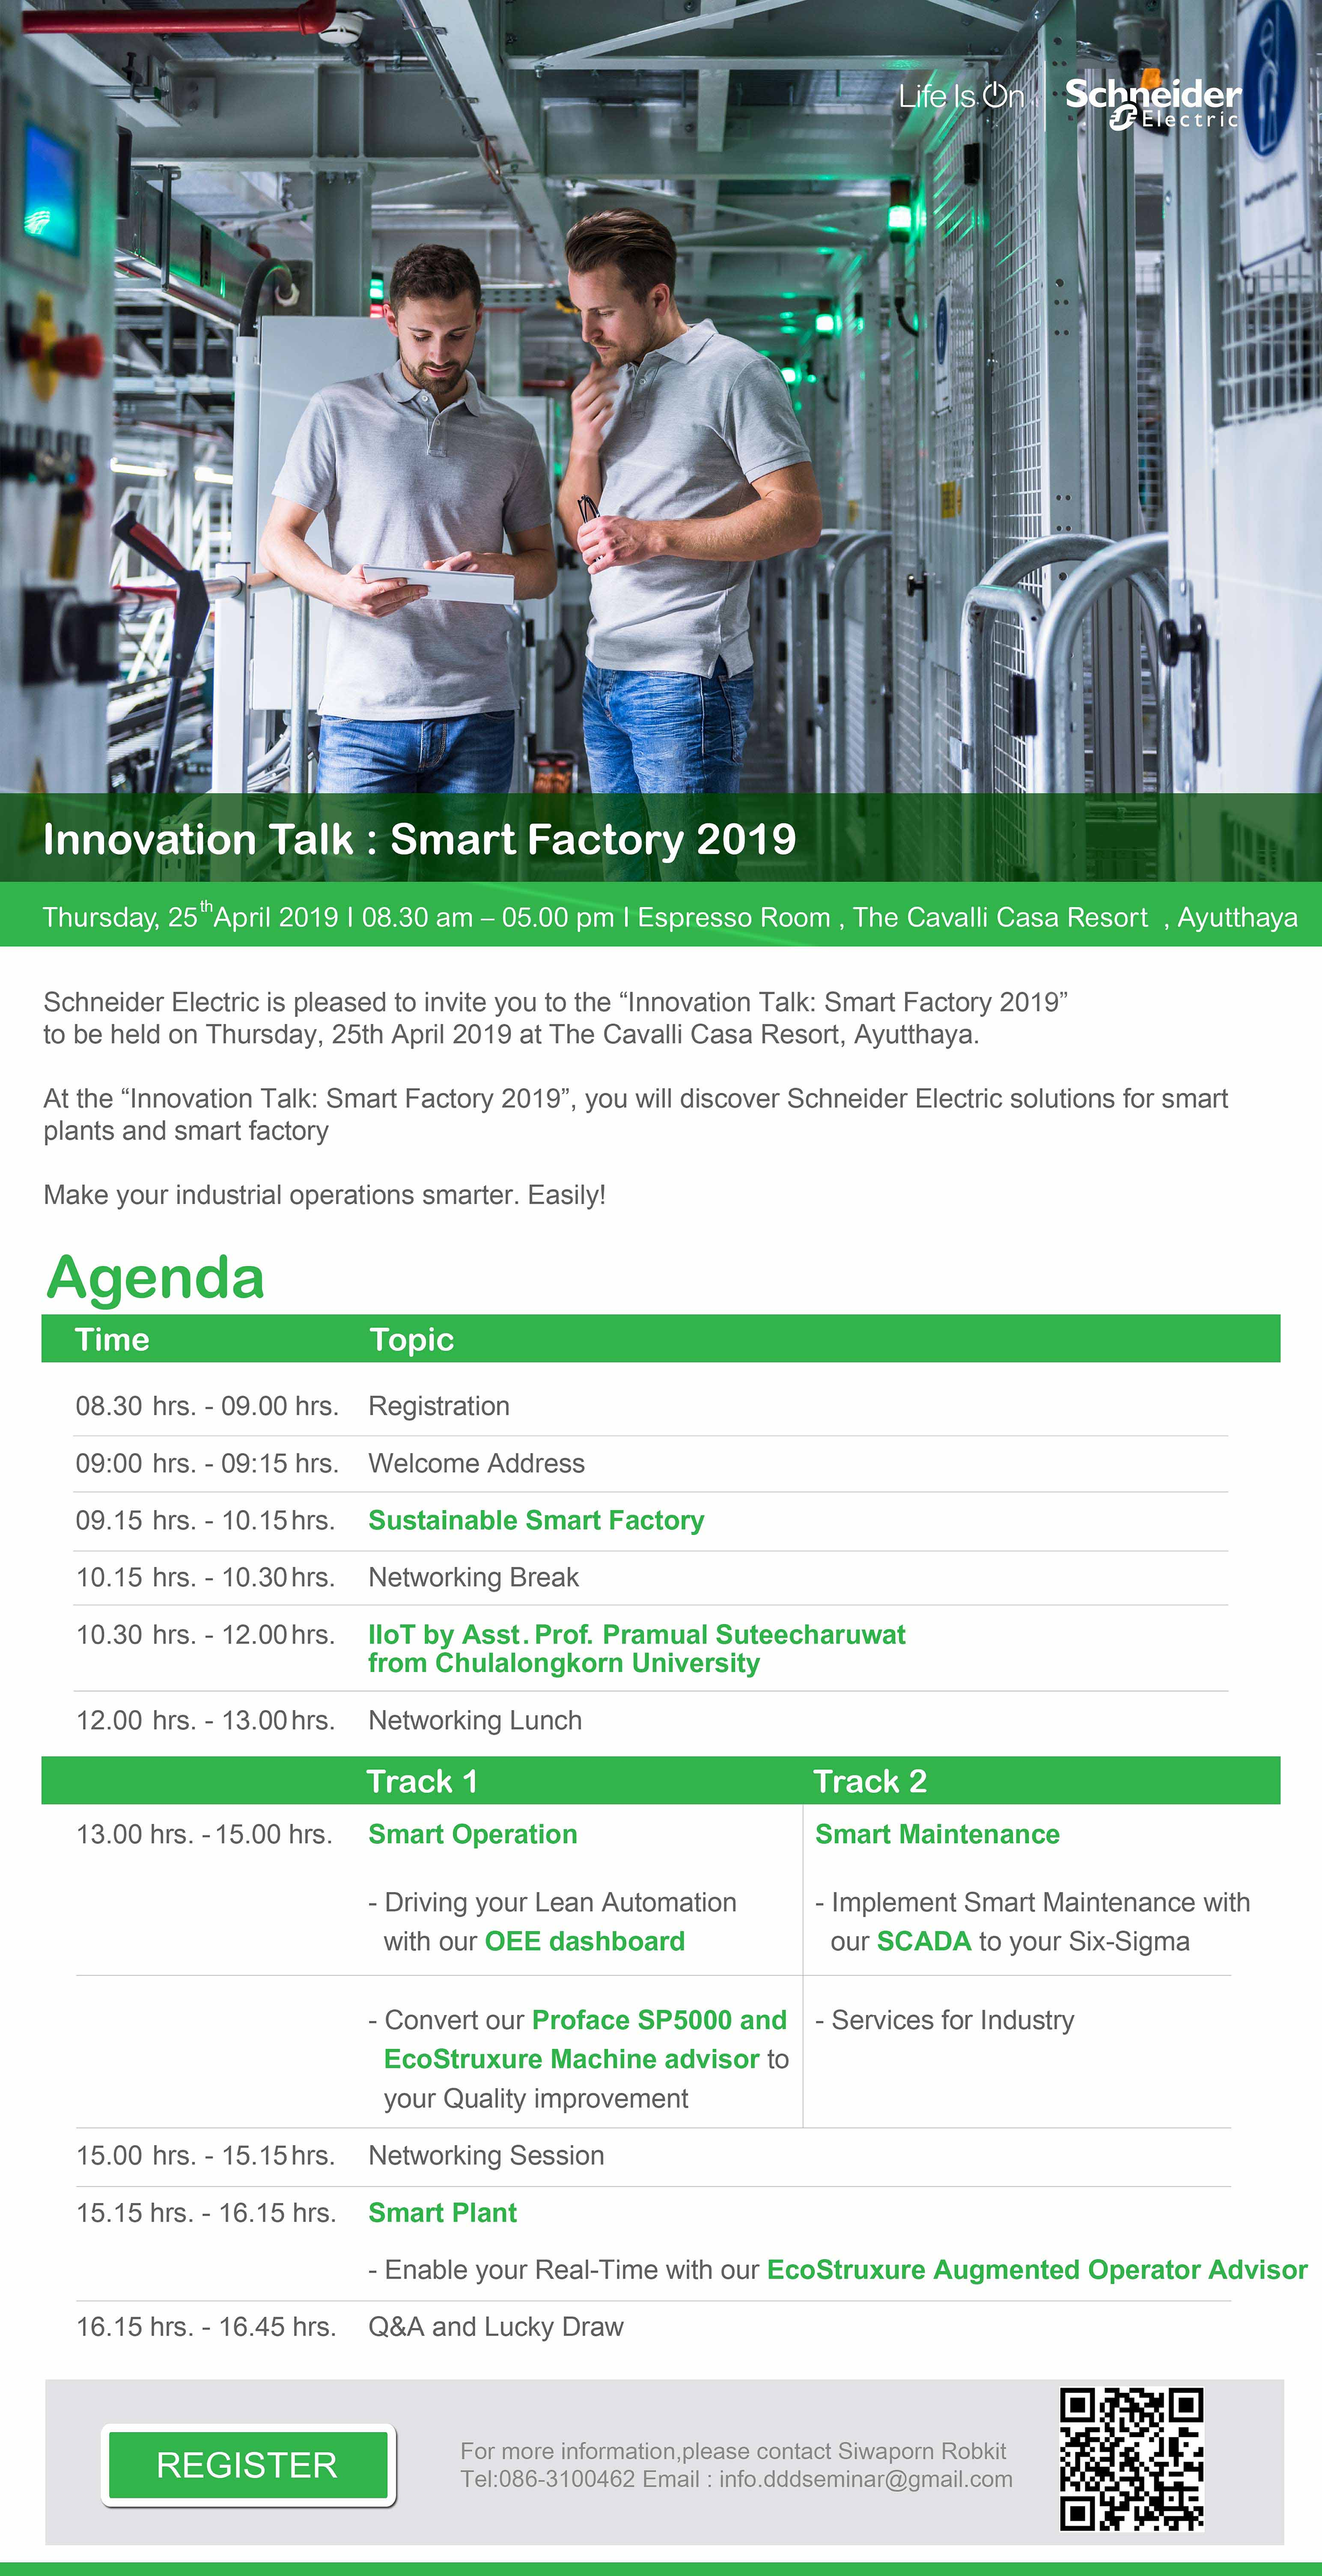 Innovation day : Smart Factory 2019